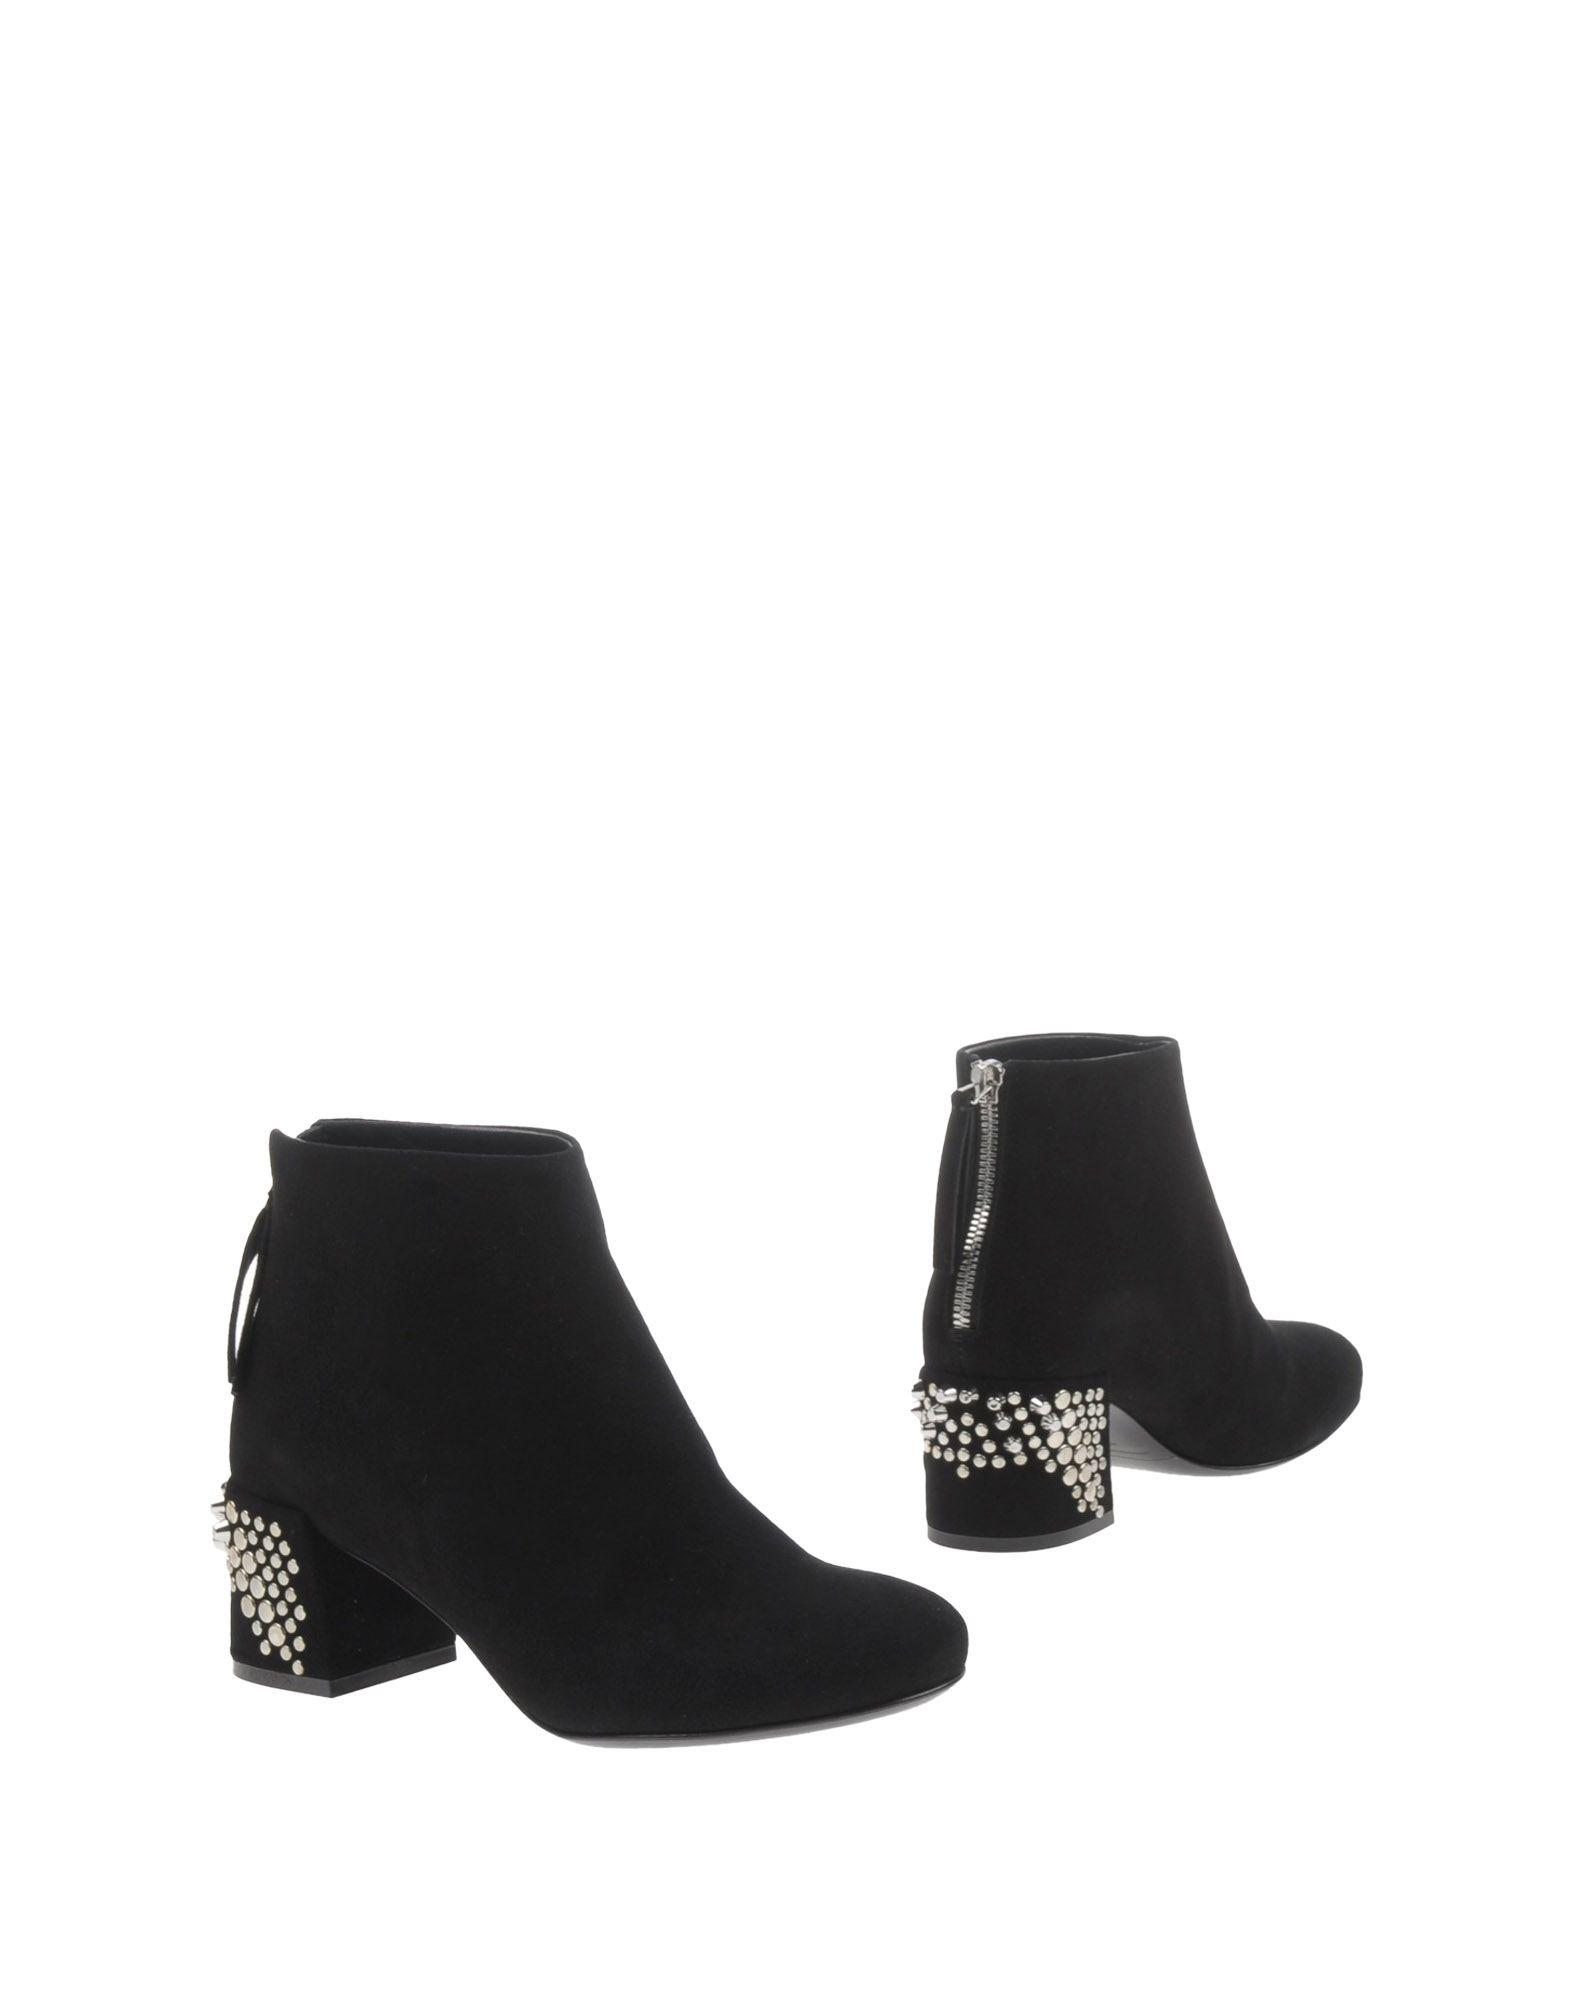 McQ Alexander McQueen EDDY BOOT - Ankle boots - black/white 6O2WiR